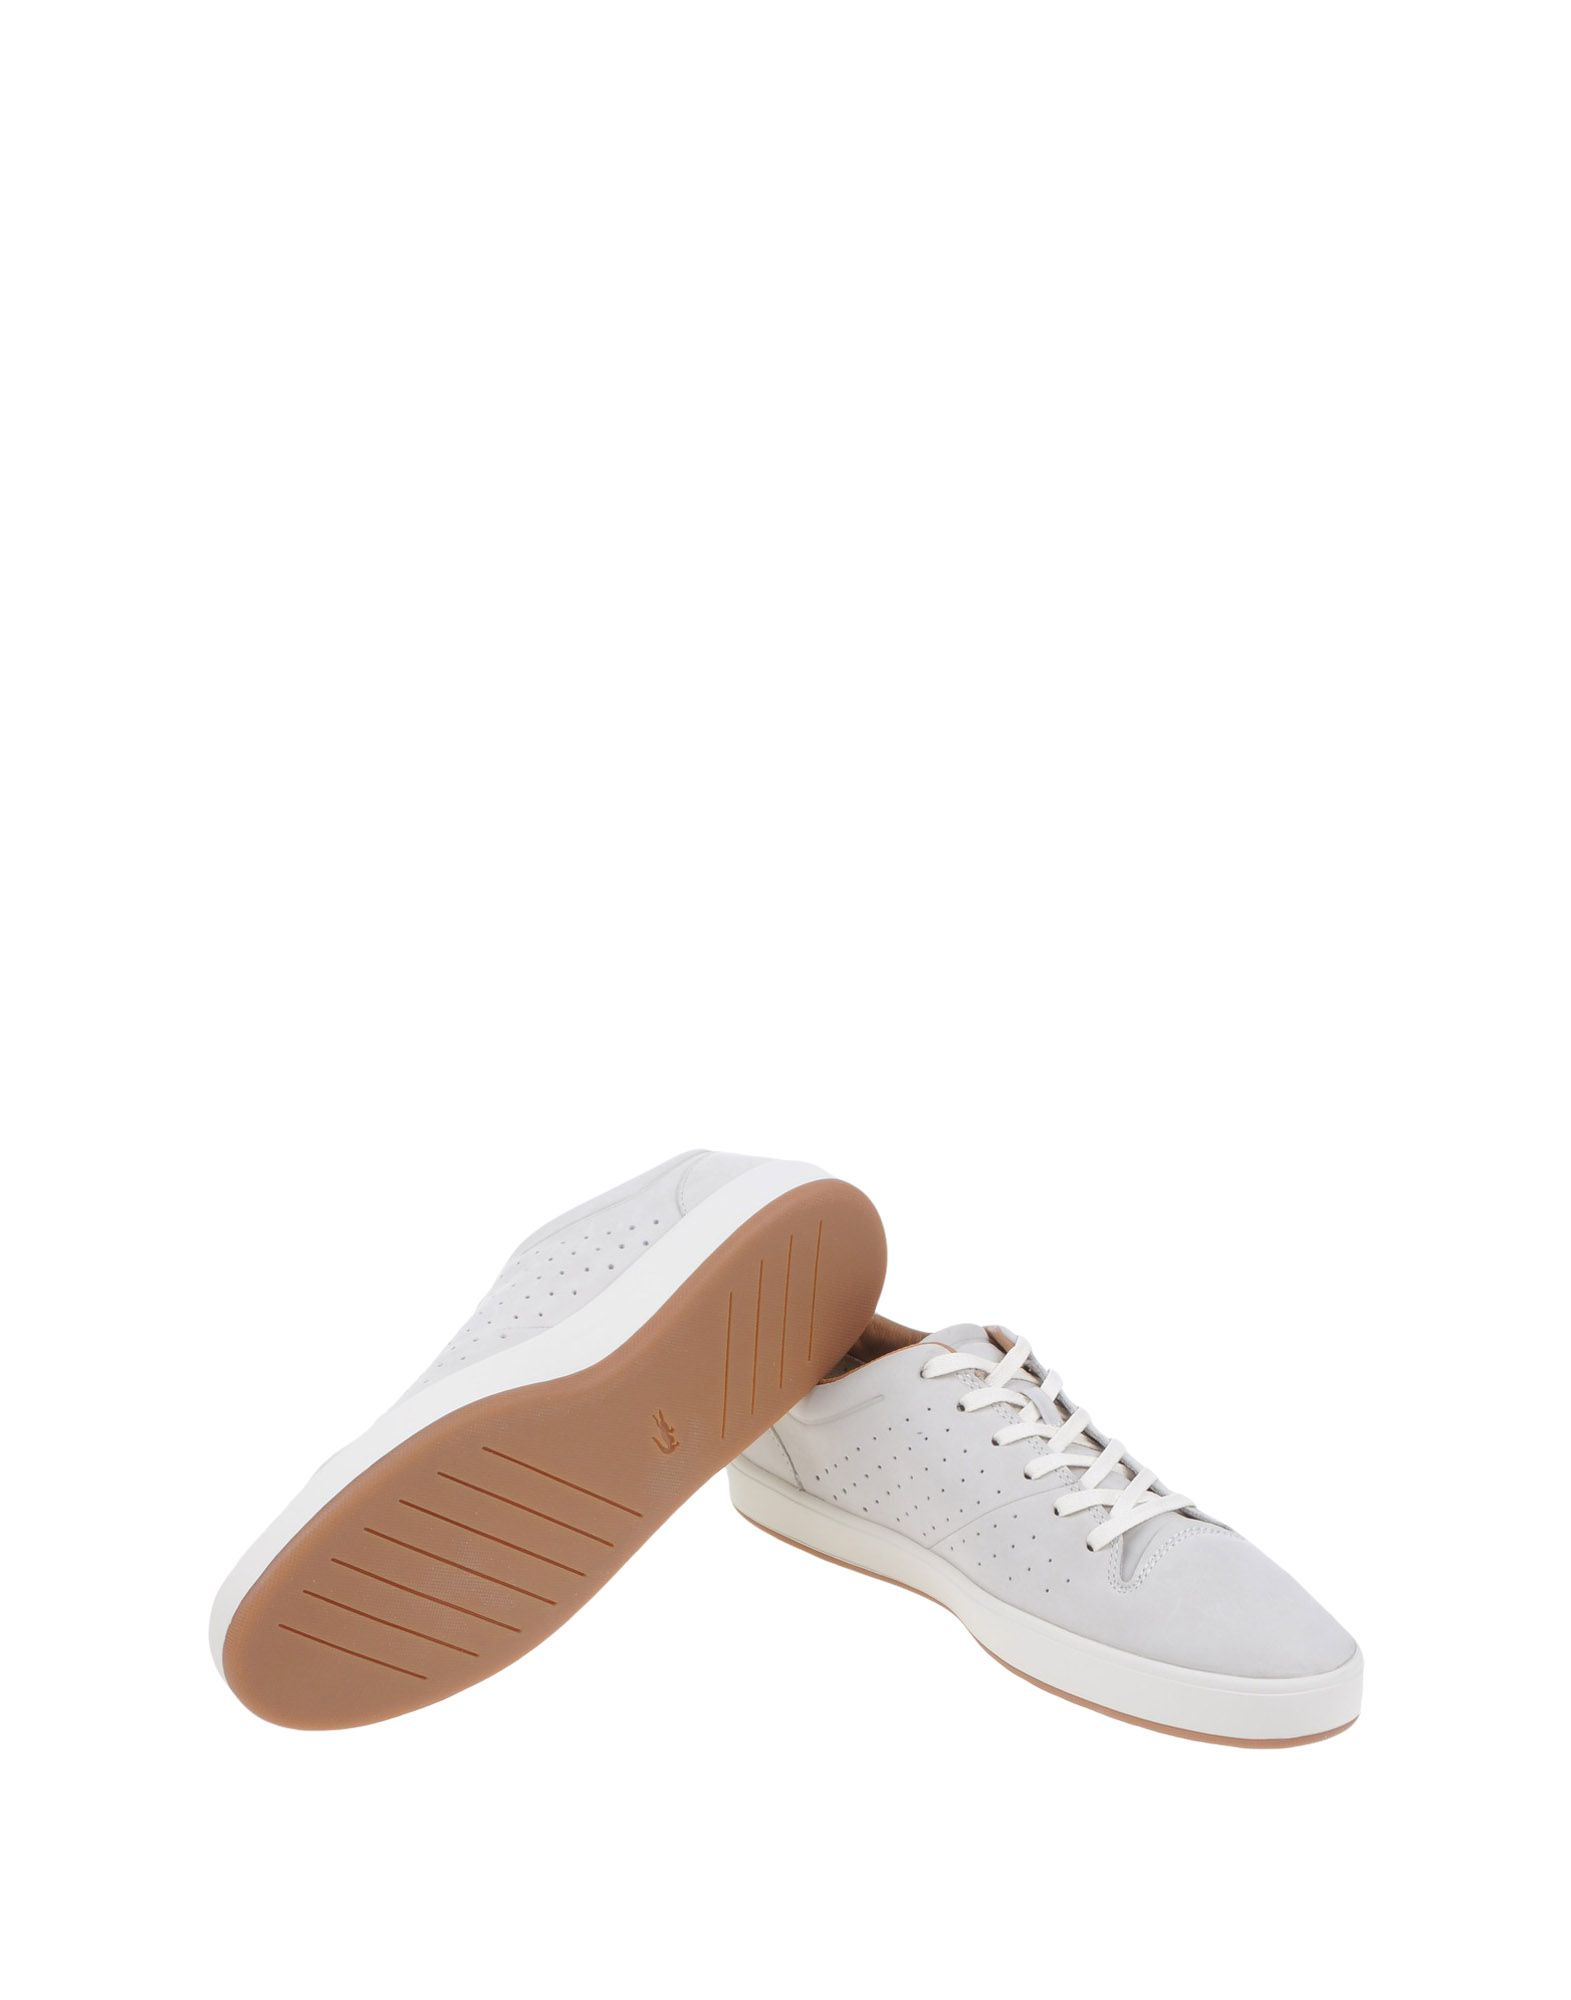 Sneakers Lacoste Tamora Lace Up 116 1 - Femme - Sneakers Lacoste sur